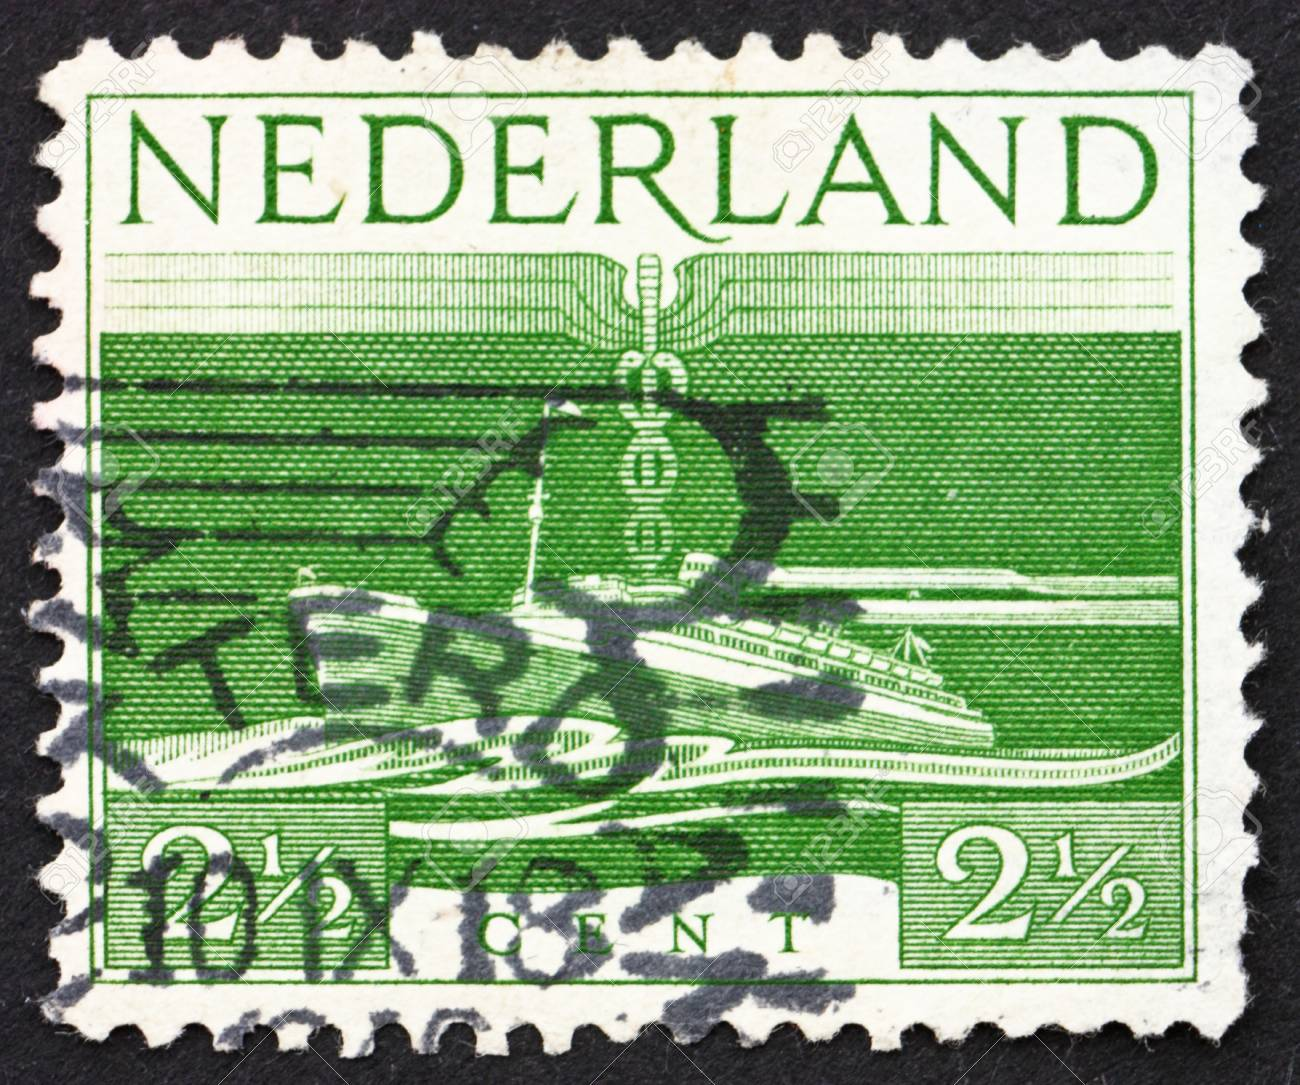 NETHERLANDS - CIRCA 1944: a stamp printed in the Netherlands shows S. S. Nieuw Amsterdam, Transatlantic Liner, circa 1944 Stock Photo - 14514440